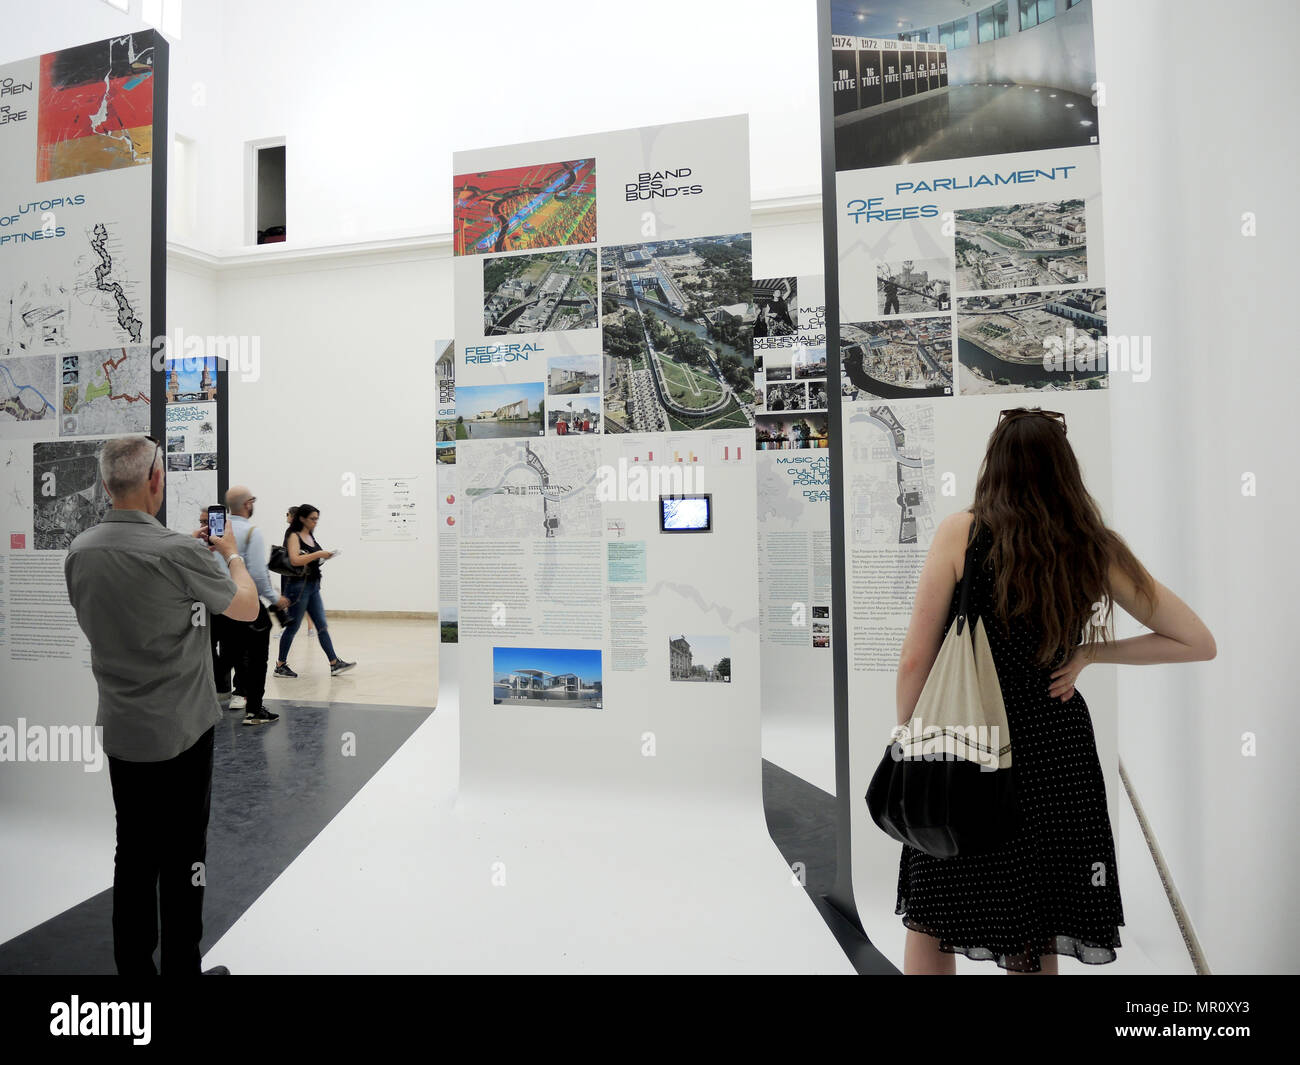 24 May 2018, Italy, Venice: Visitors peruse the exhibition 'Unbuilding Walls' by architecture group Graft at the German pavilion of the 16th International Architecture Exhibition. The Biennale runs from 26 May to 25 November 2018. Photo: Lena Klimkeit/dpa - Stock Image